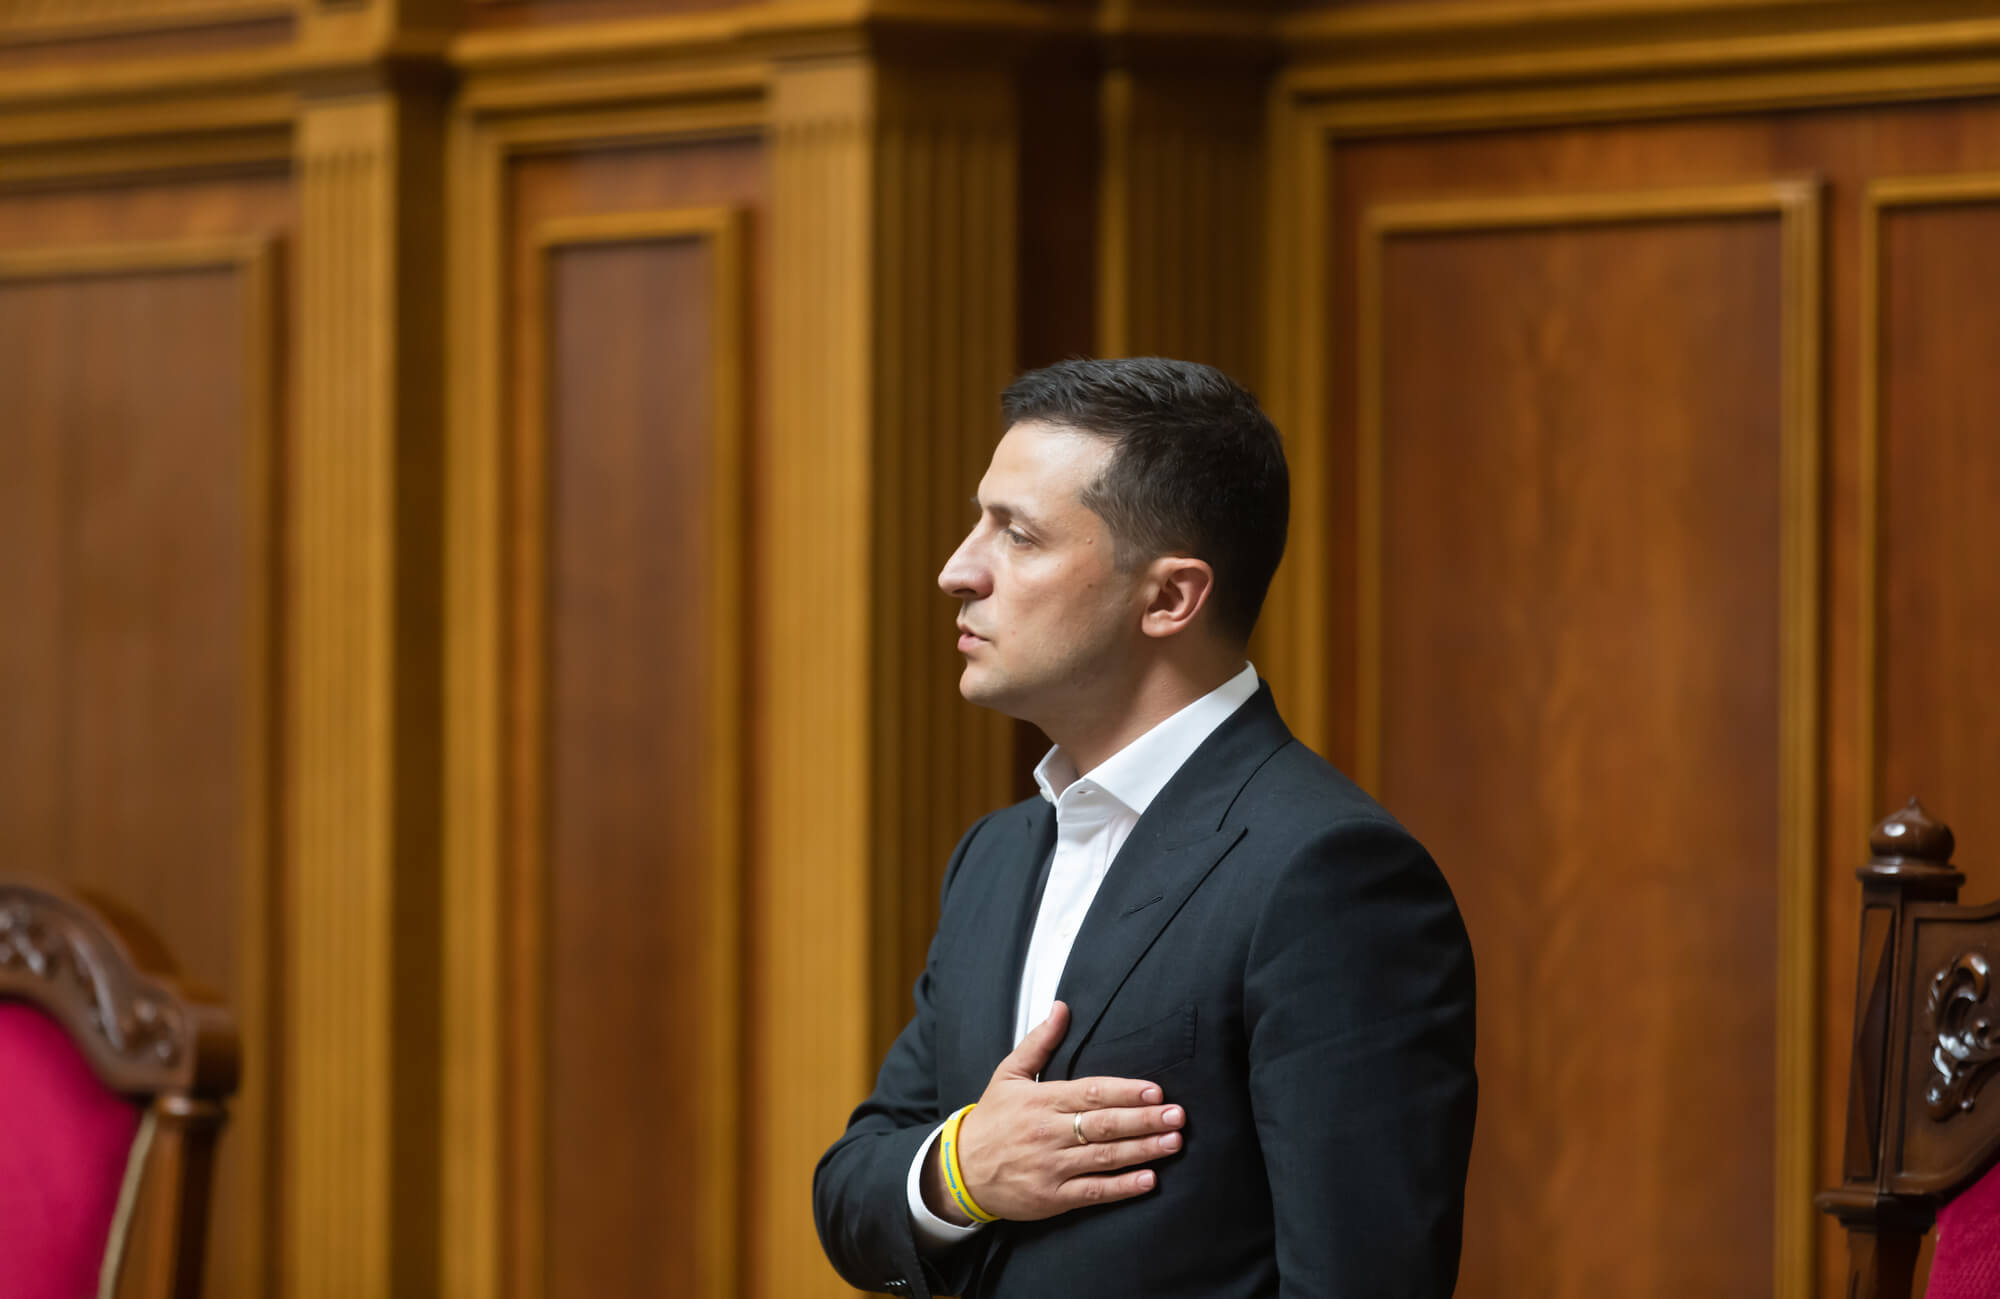 Zelensky's New Constitution: What Is On The Table?